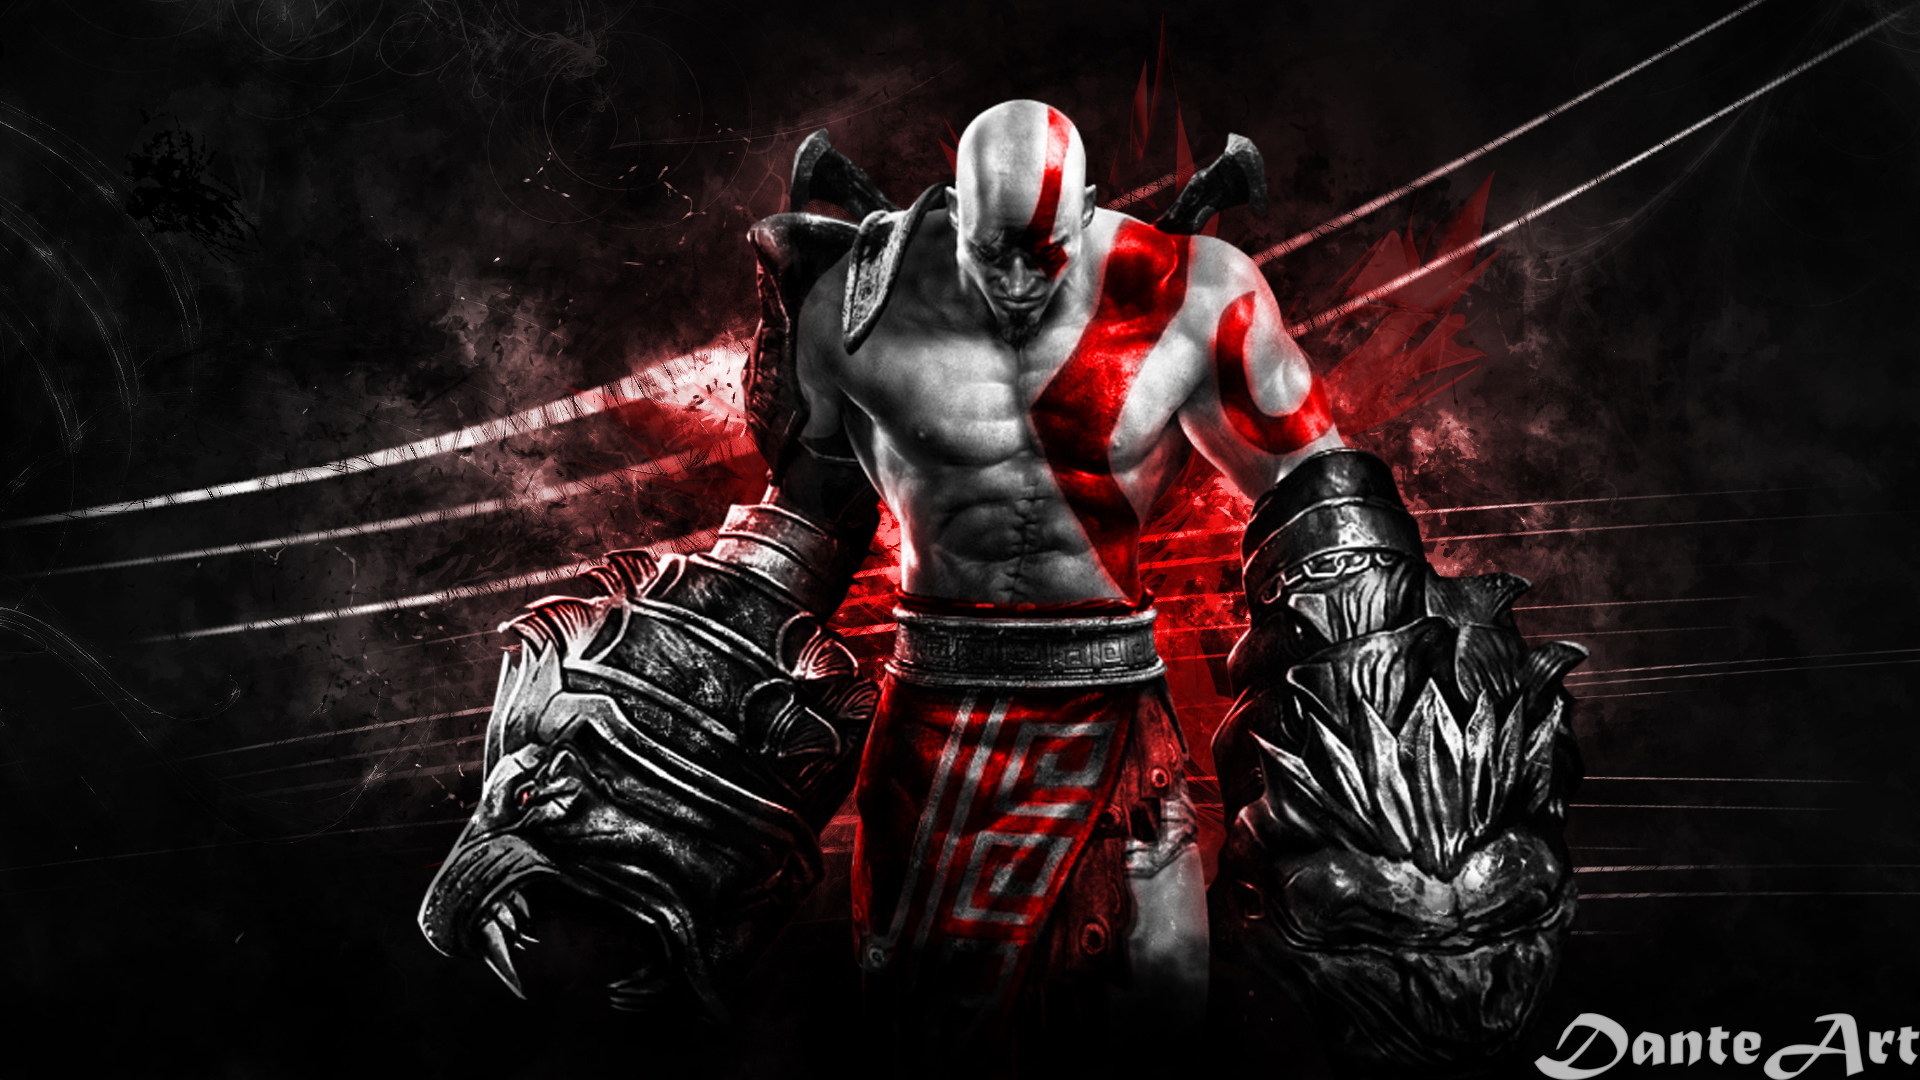 76 God Of War Wallpapers On Wallpapersafari